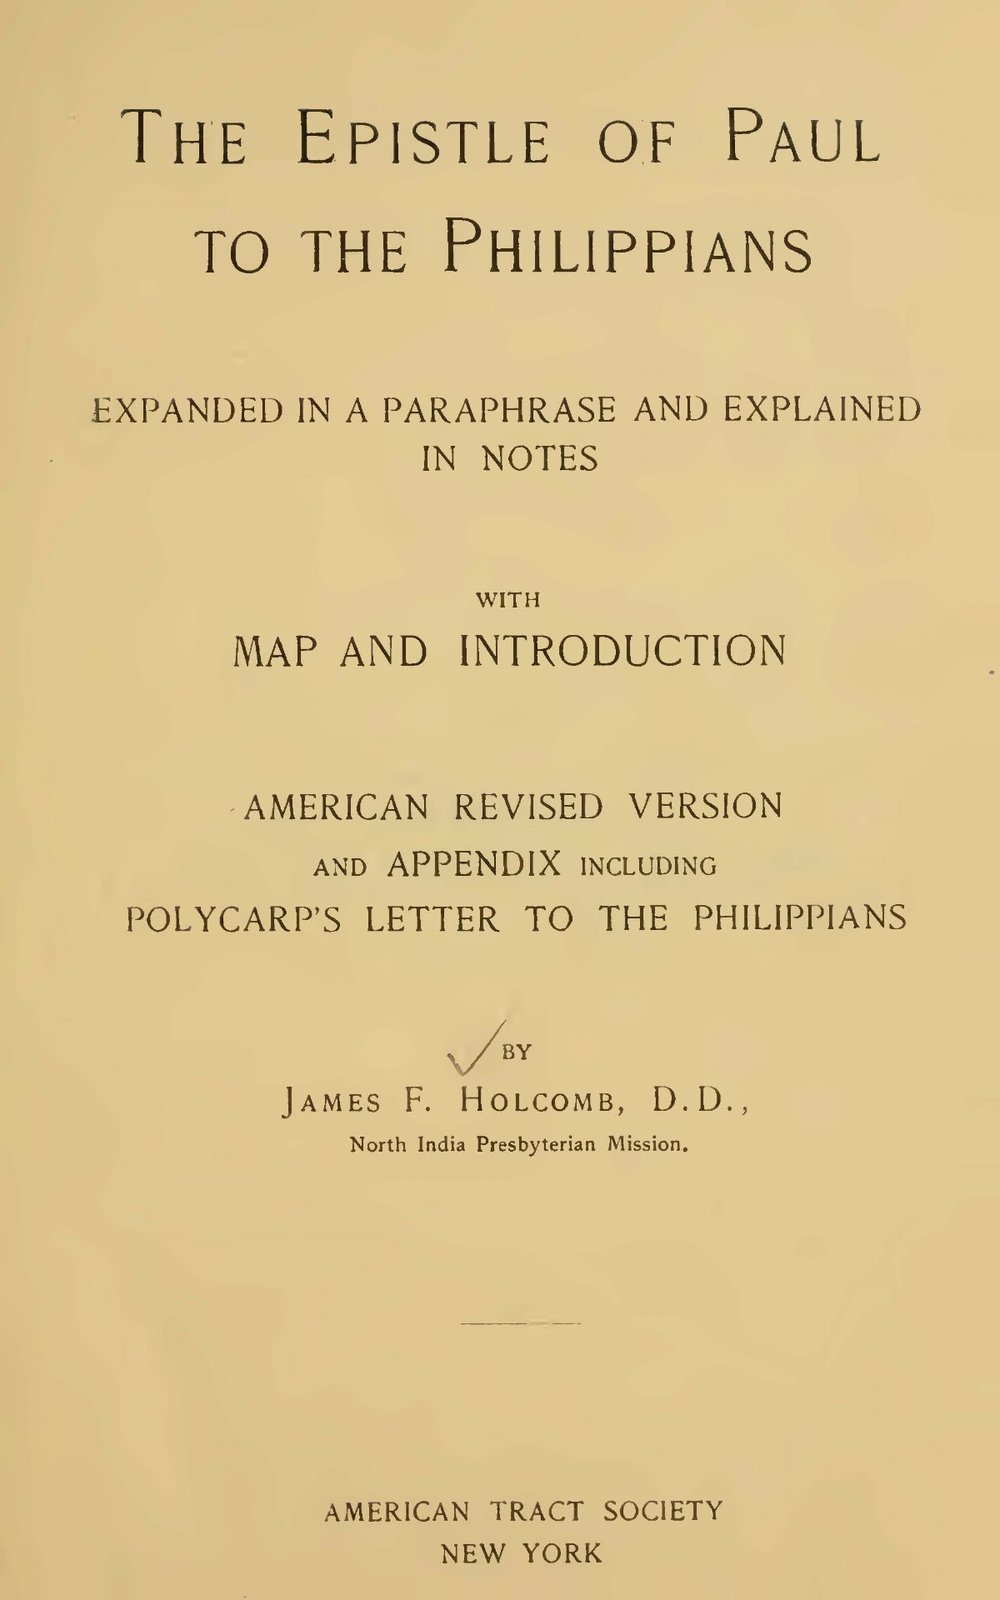 Holcomb, James Foote, The Epistle of Paul to the Philippians Title Page.jpg